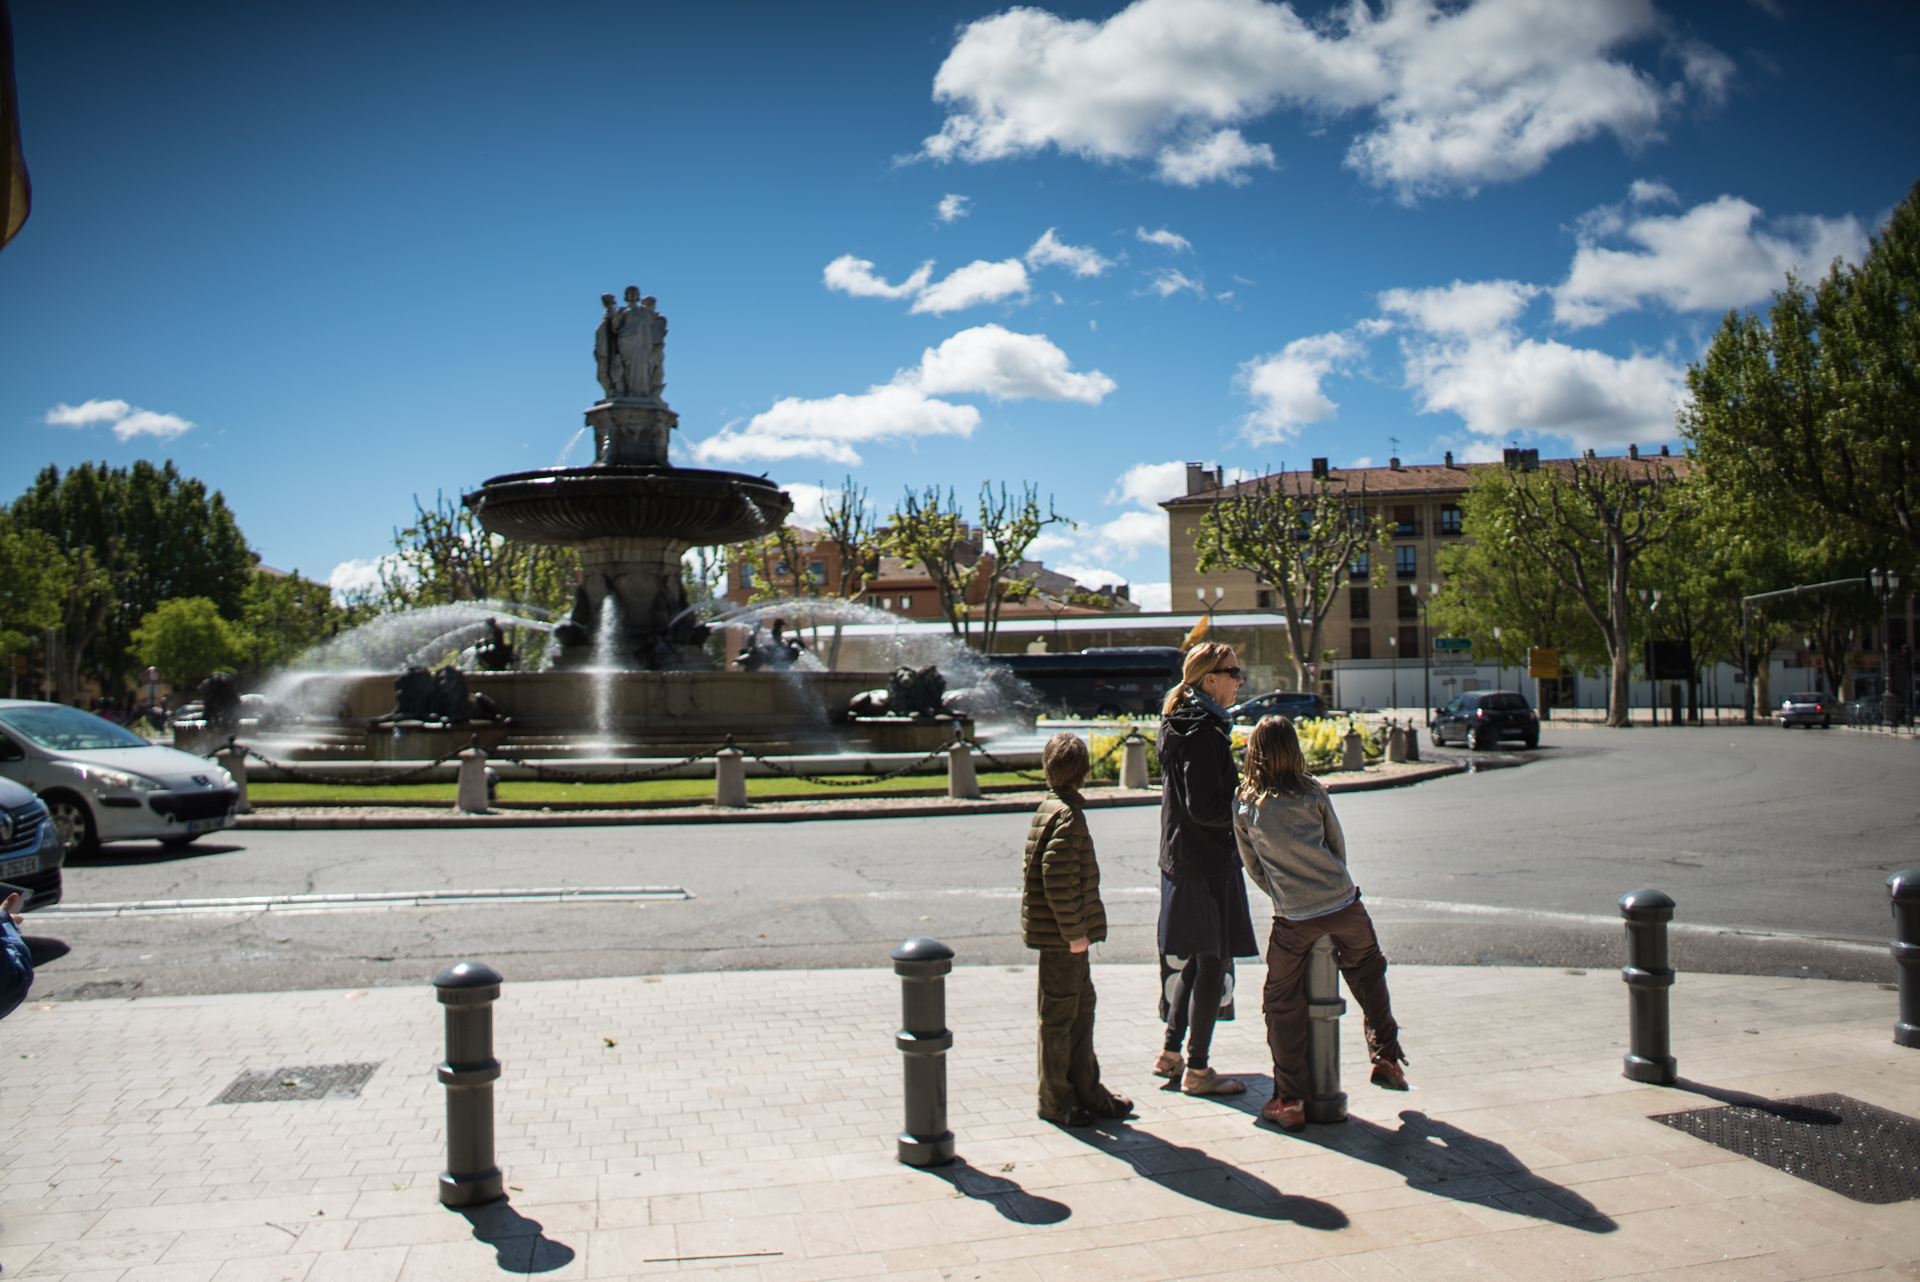 Go on a fountain hunt when visiting Aix-en-Provence with kids